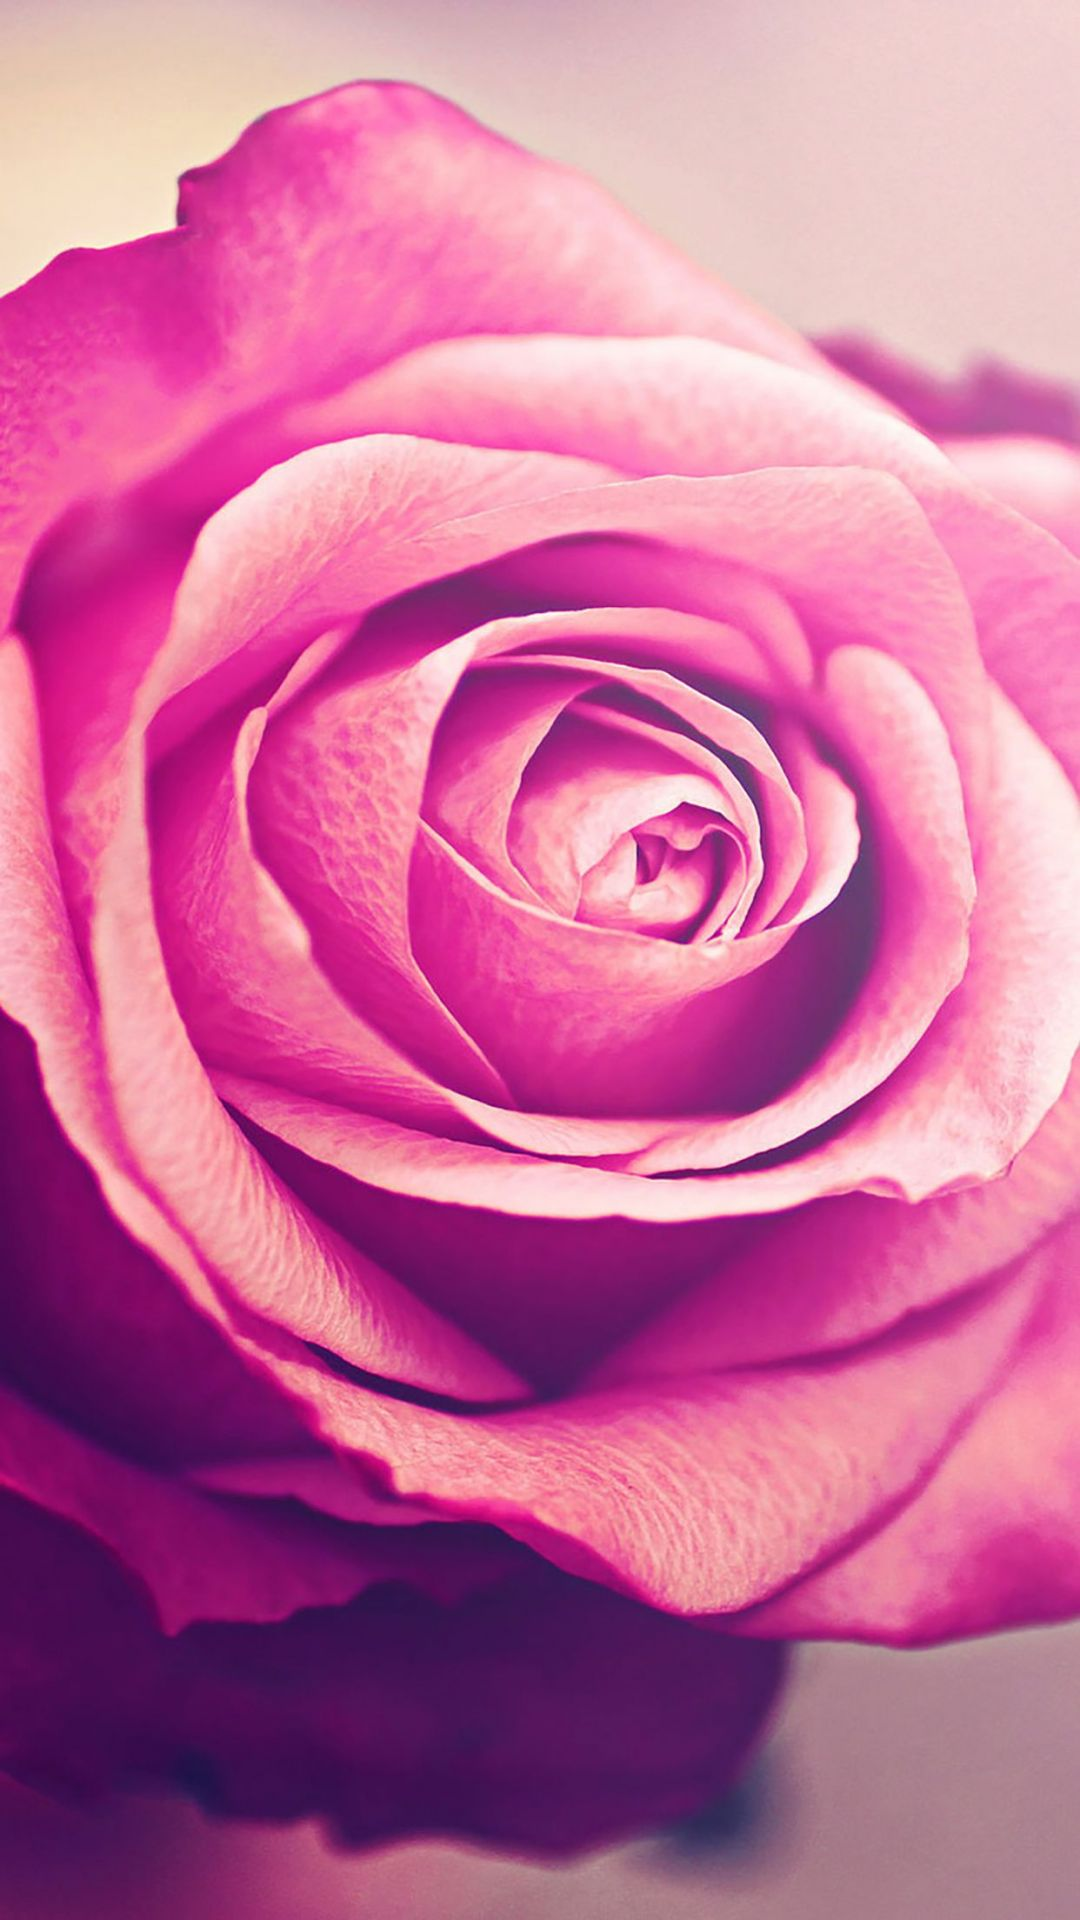 Pink rose love iphone 4s 640 x 960 ...